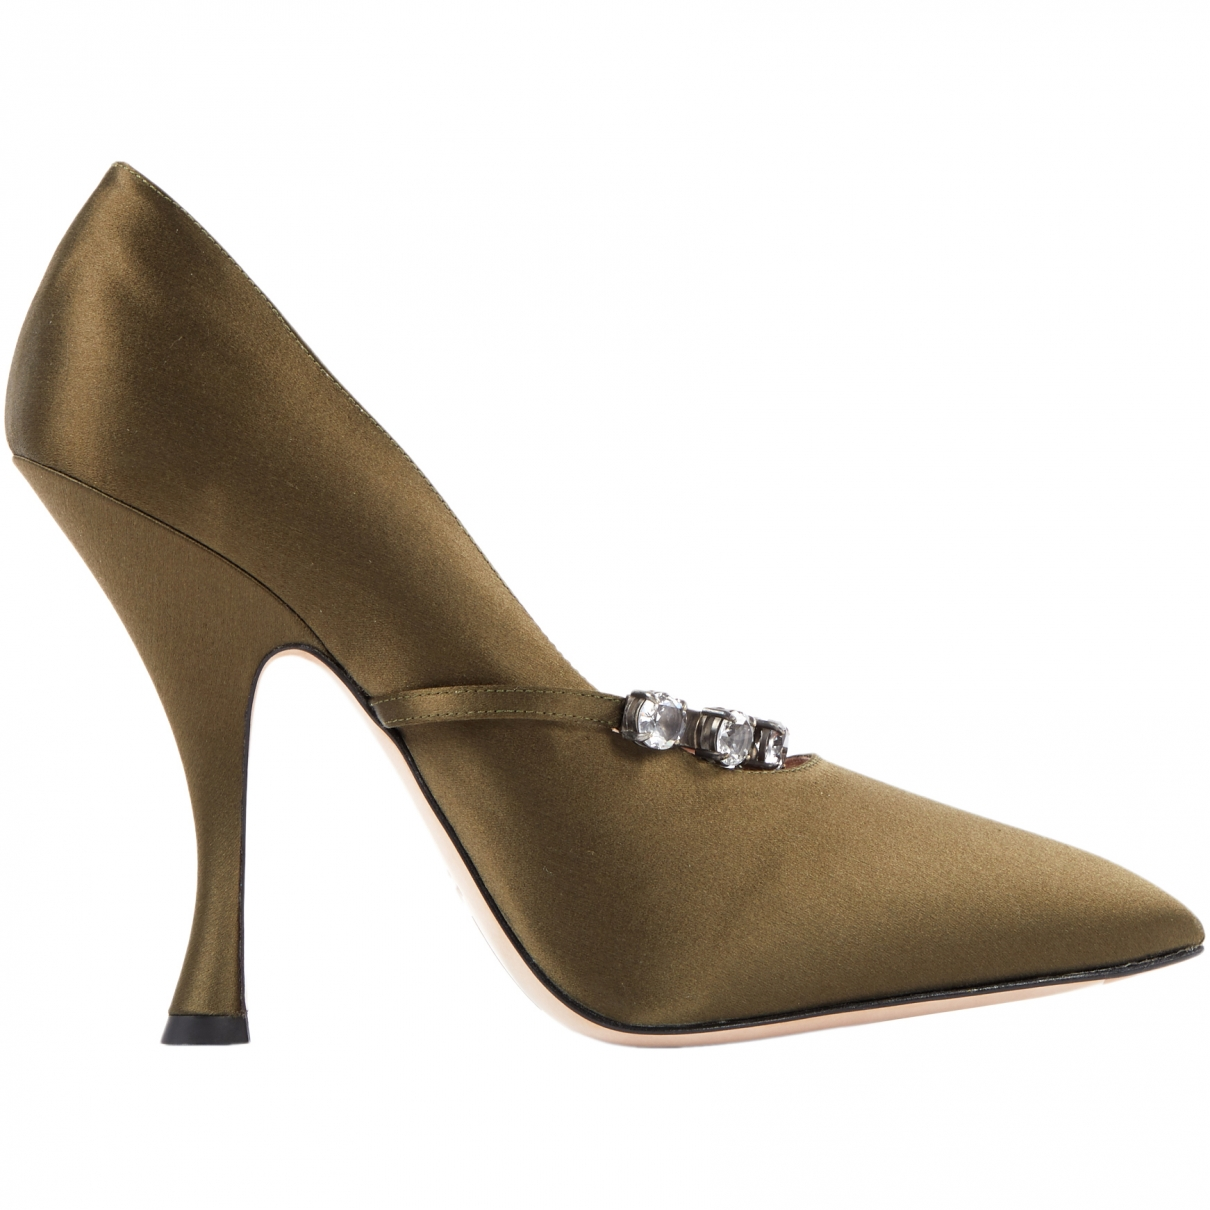 Miu Miu \N Khaki Cloth Heels for Women 41 EU